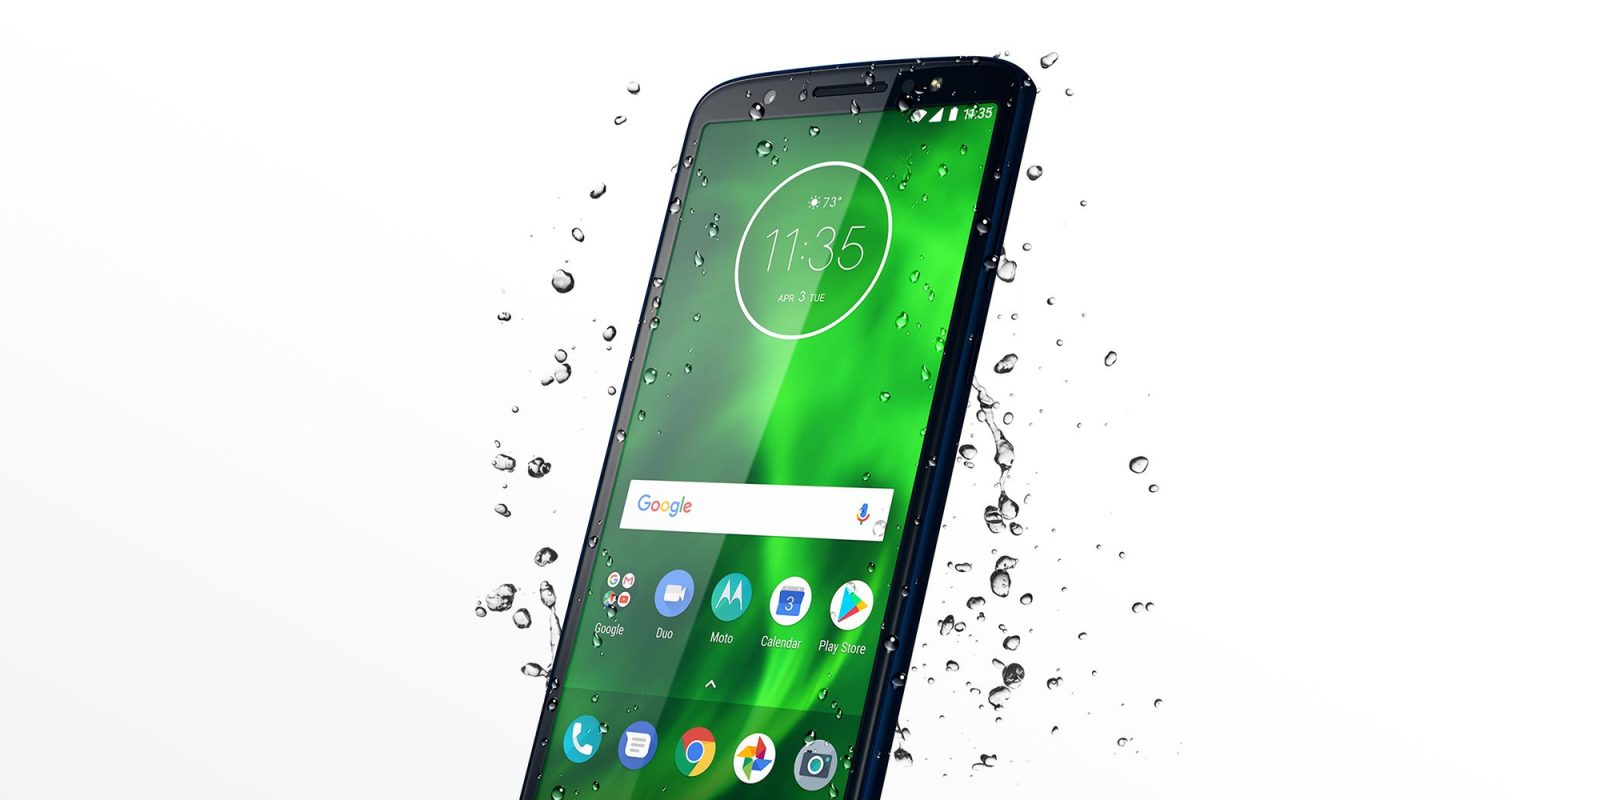 Motorola's Prime Exclusive Moto G6 Smartphone can be yours for $140 (Save $90)